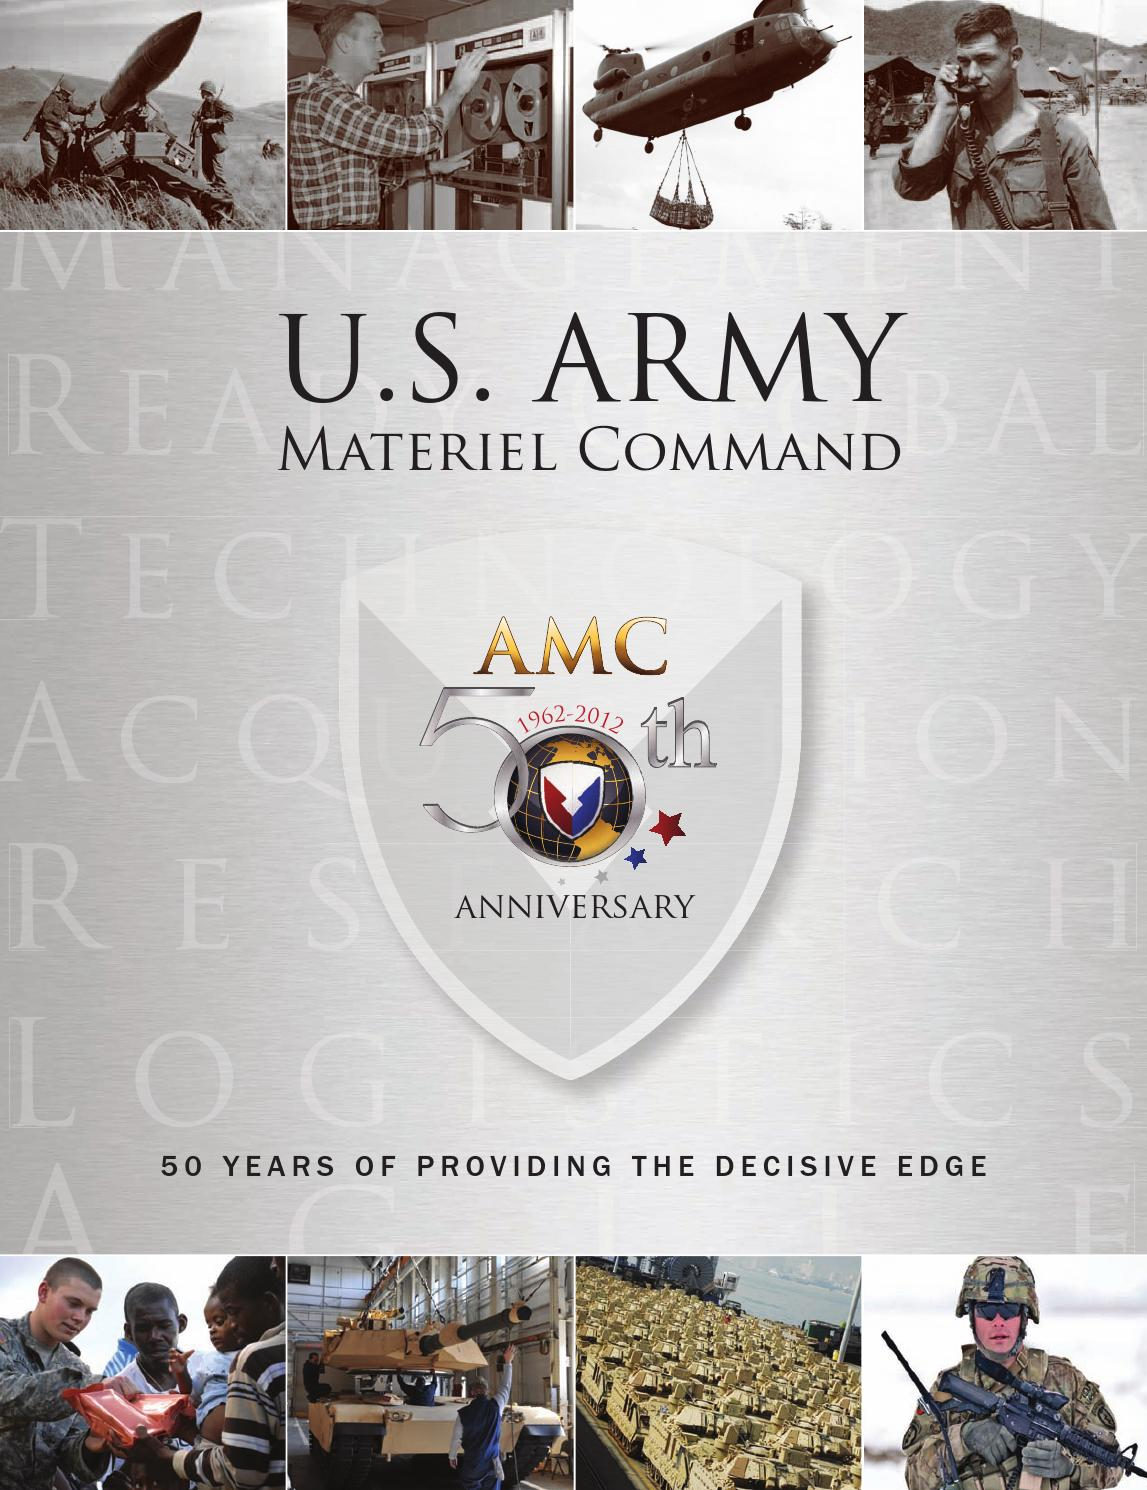 Us Army Materiel Command 50 Years Of Providing The Decisive Edge Cmd Concentrate Trace Mineral 250 Drops By Faircount Media Group Issuu